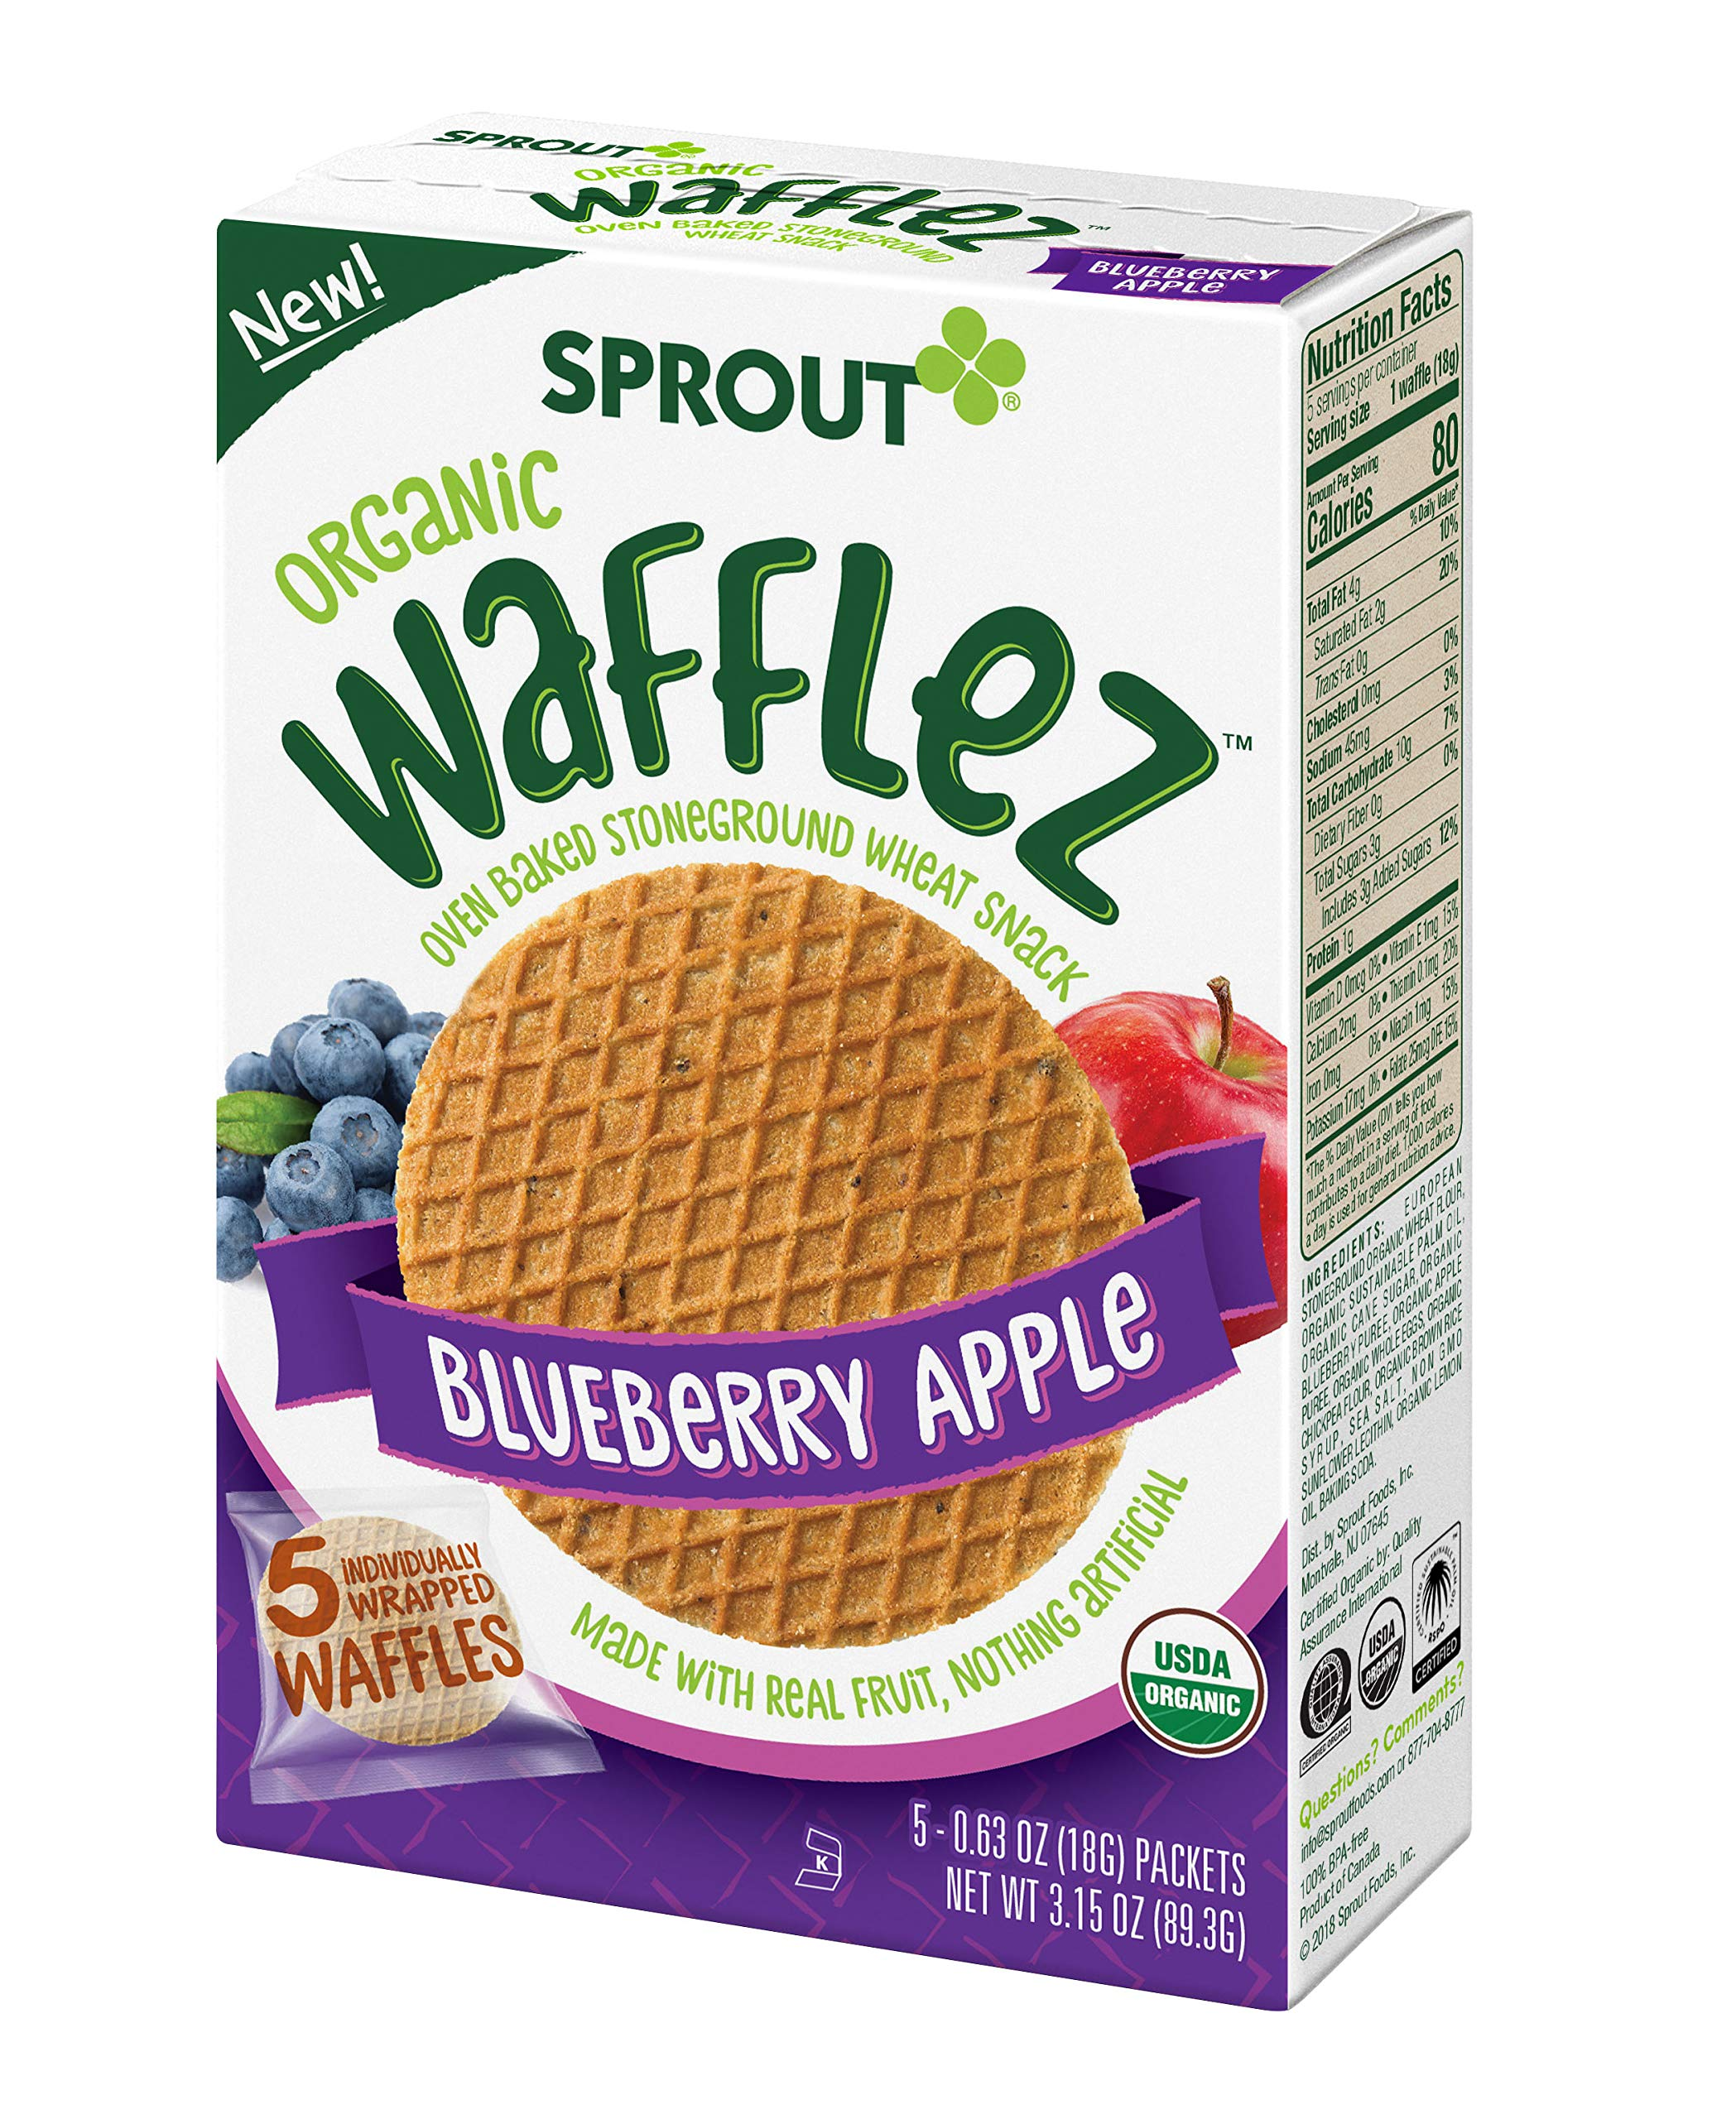 Sprout Organic Wafflez, Blueberry Apple, Box of 5 Toddler Snacks (Pack of 4) by Sprout